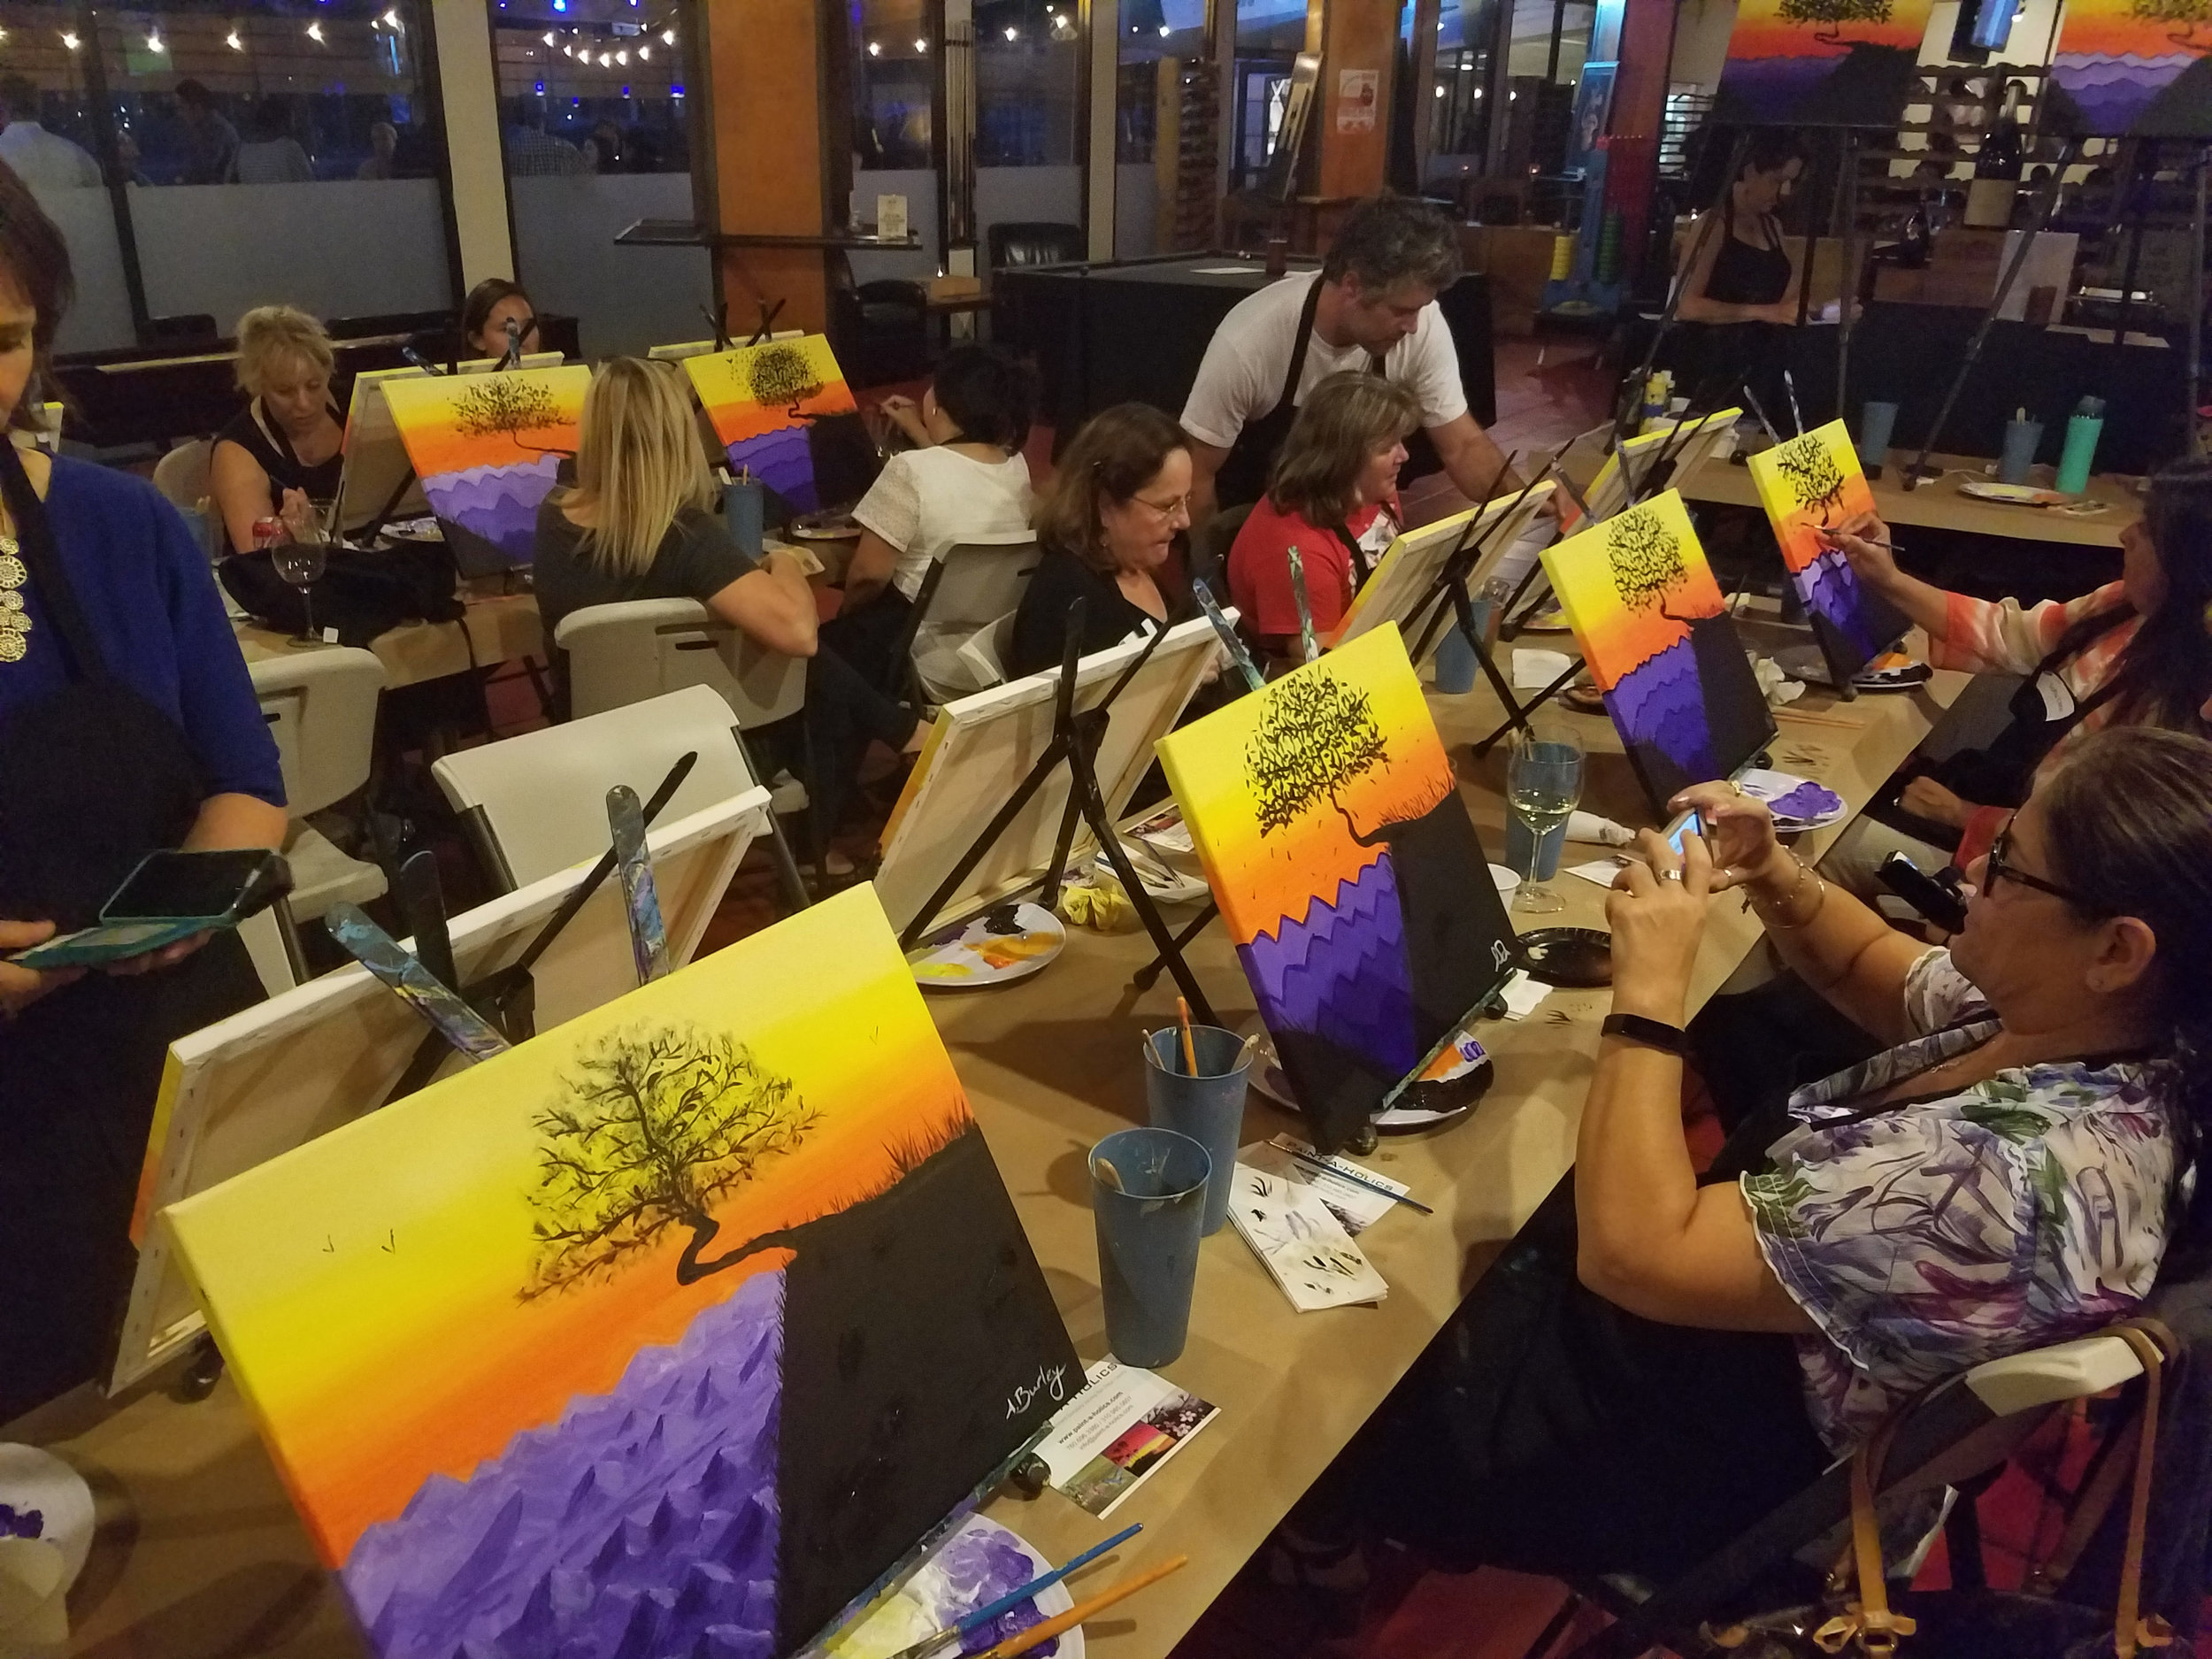 Attendees make the final details on their paintings.